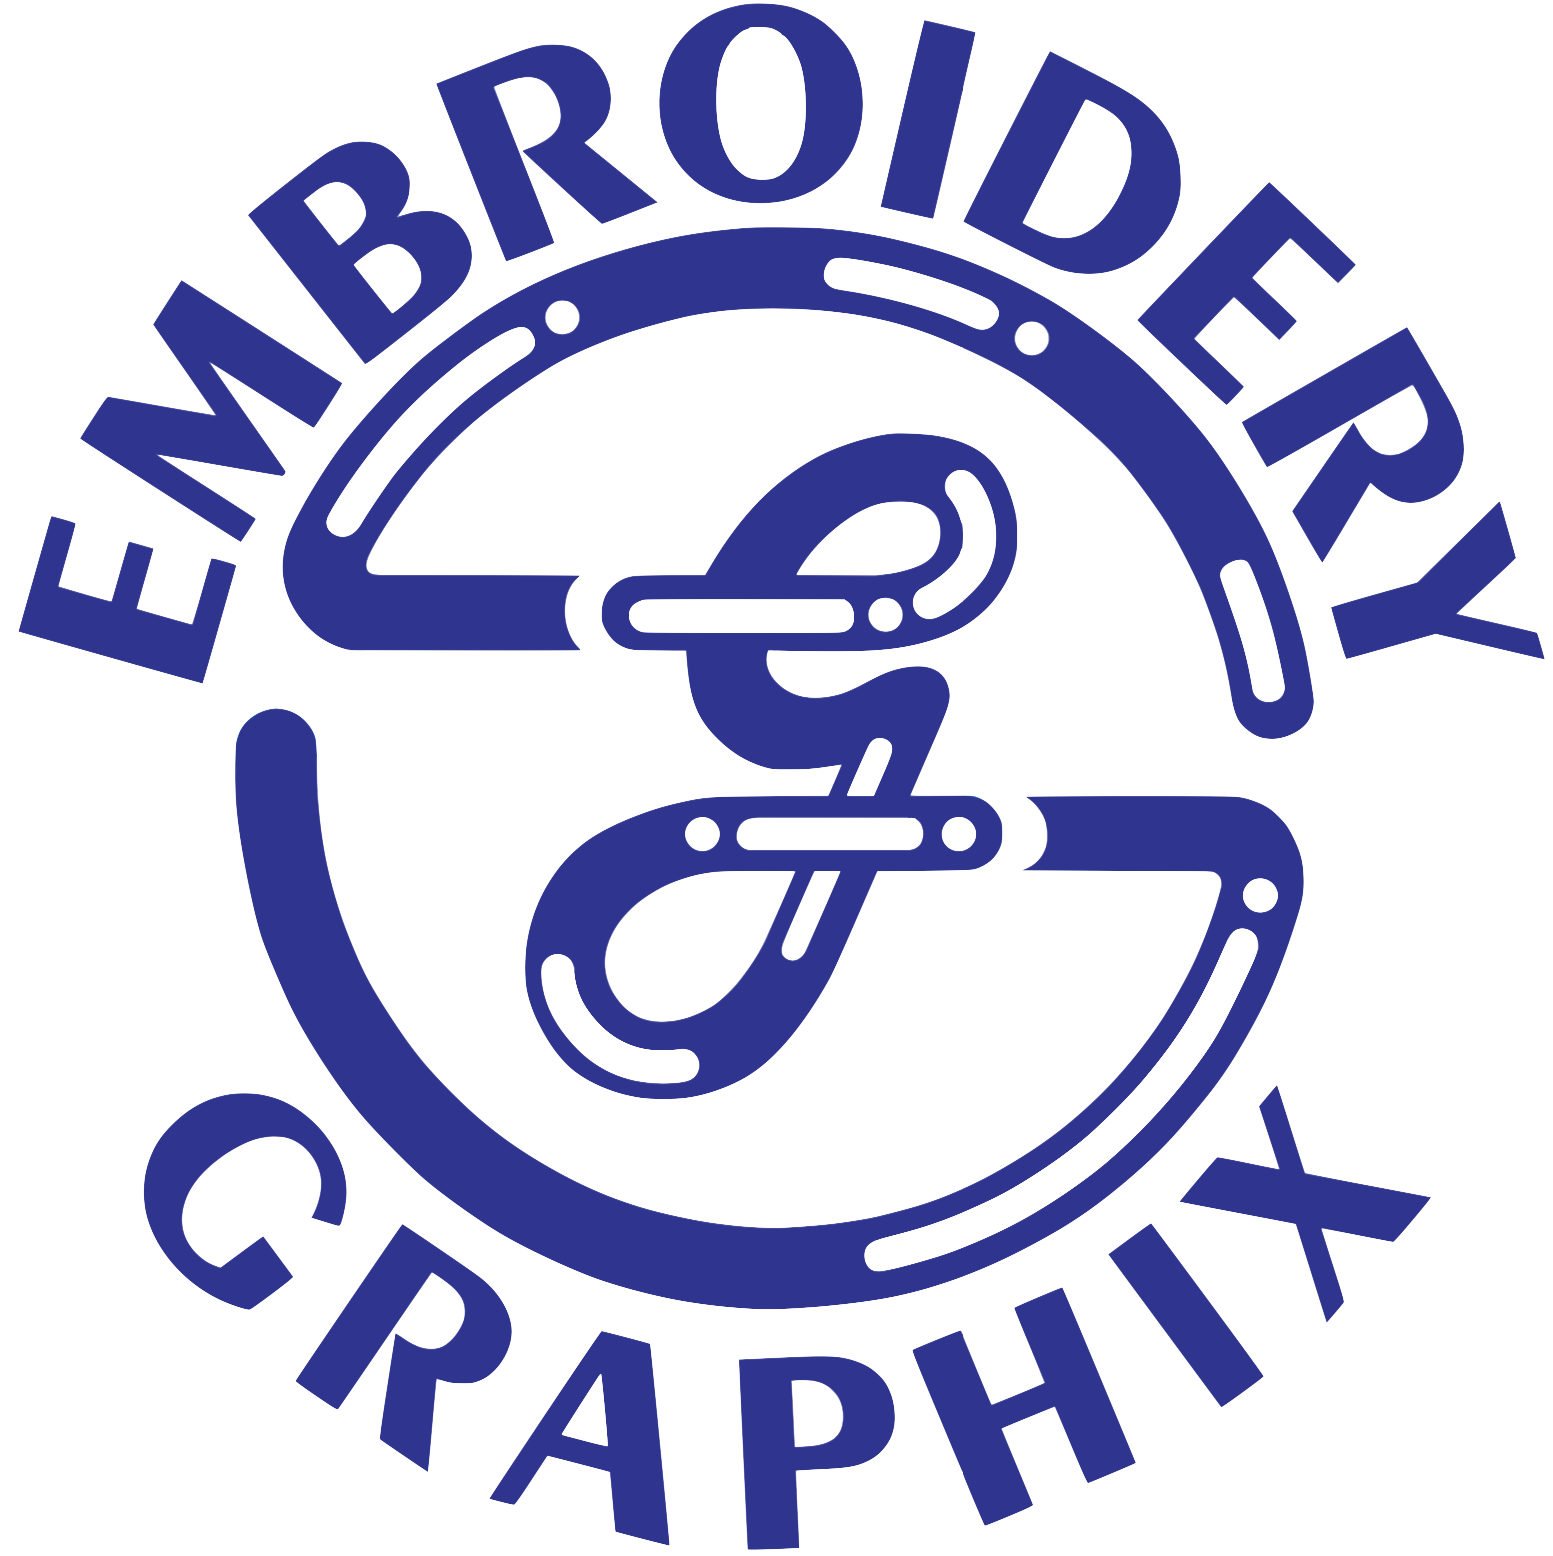 EmbroideryGraphixLogo171016.png